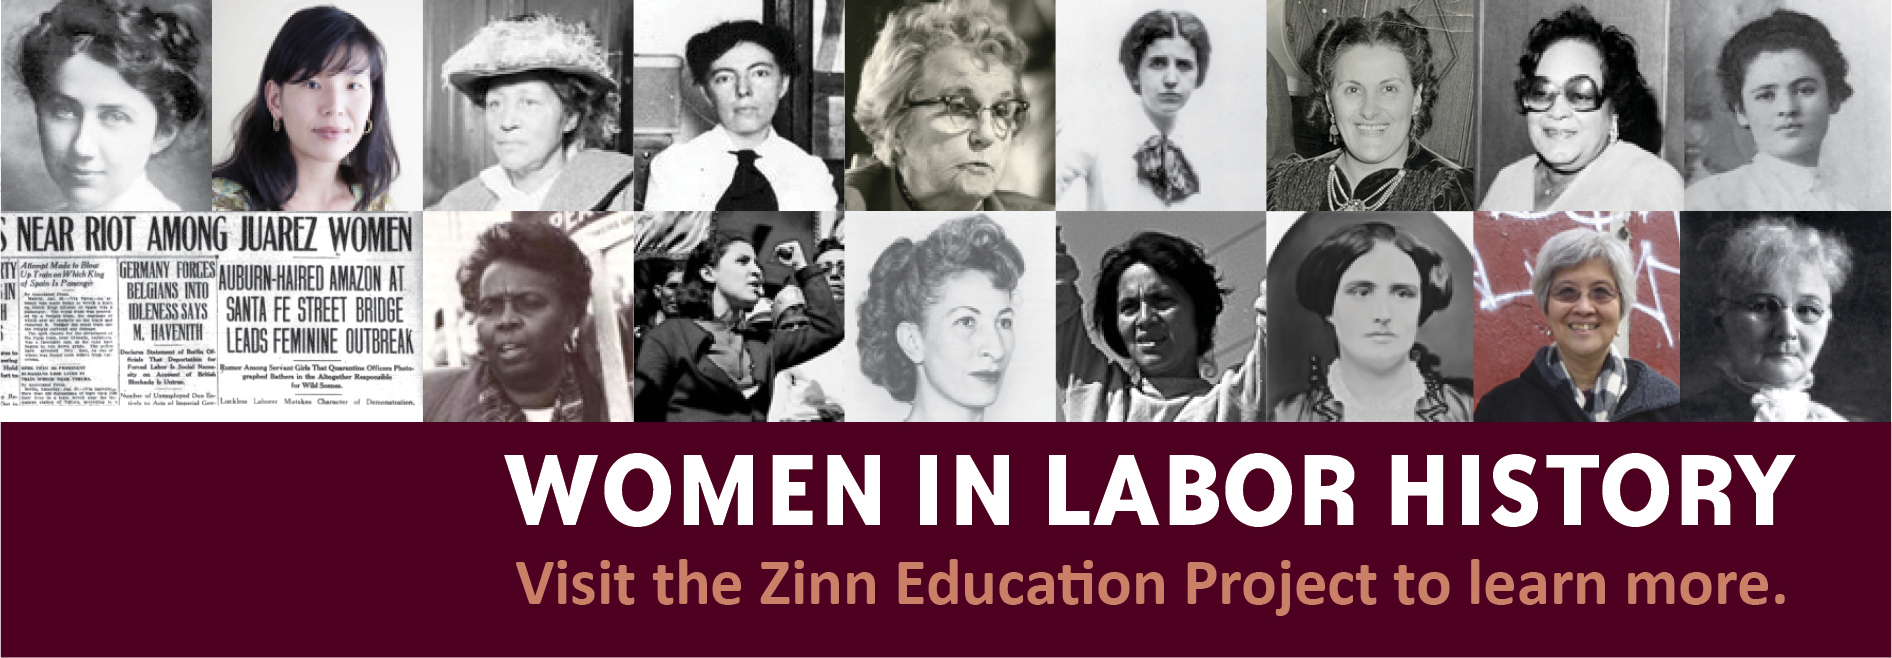 Women in Labor History Banner | Zinn Education Project